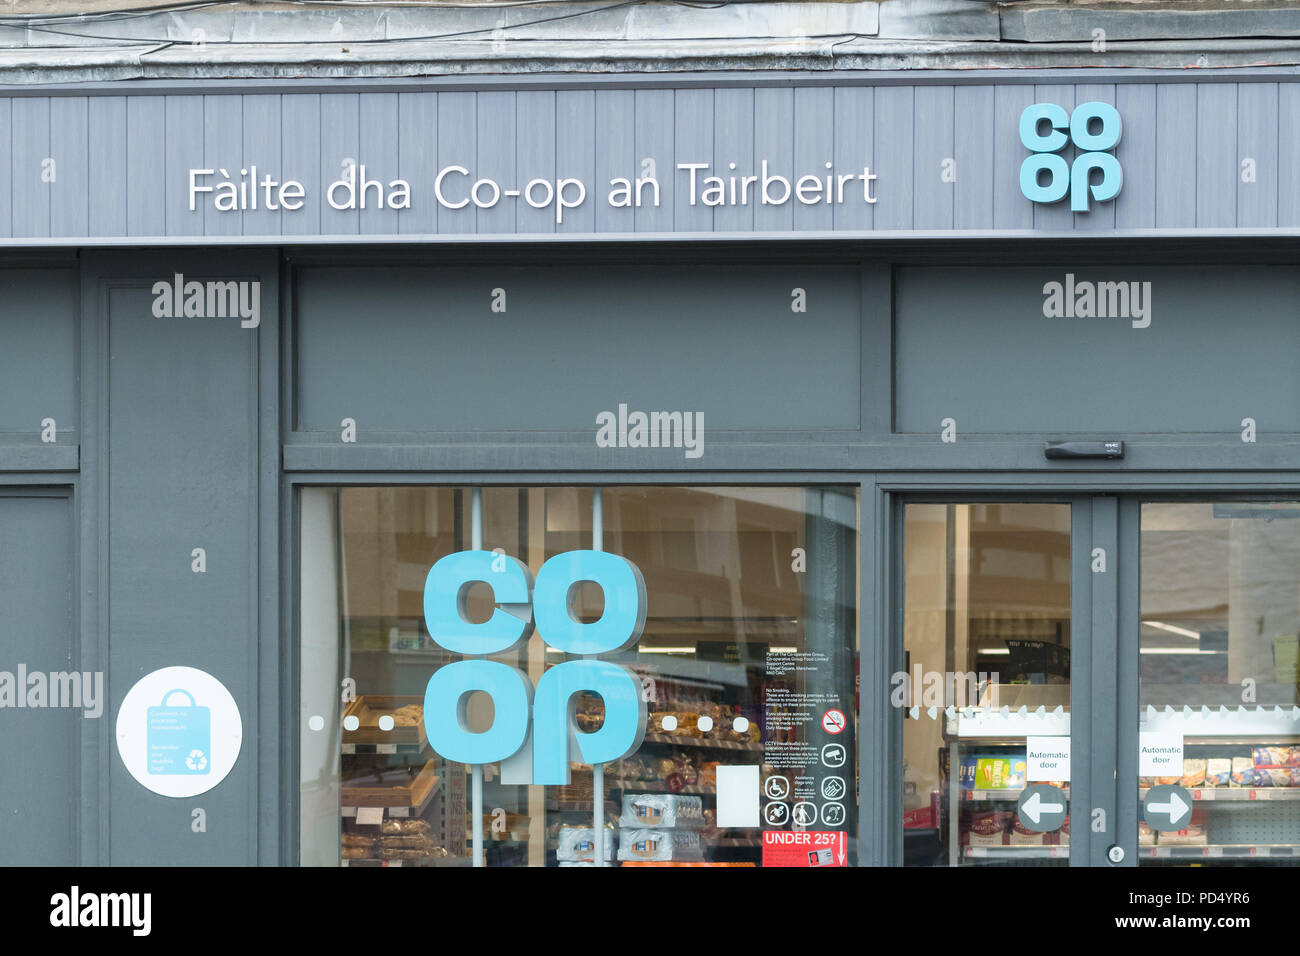 Scots gaelic sign on coop store in Tarbert - Failte dha co-op an Tairbeirt - welcome to the co-op Tarbert, Argyll and Bute, Scotland, UK - Stock Image